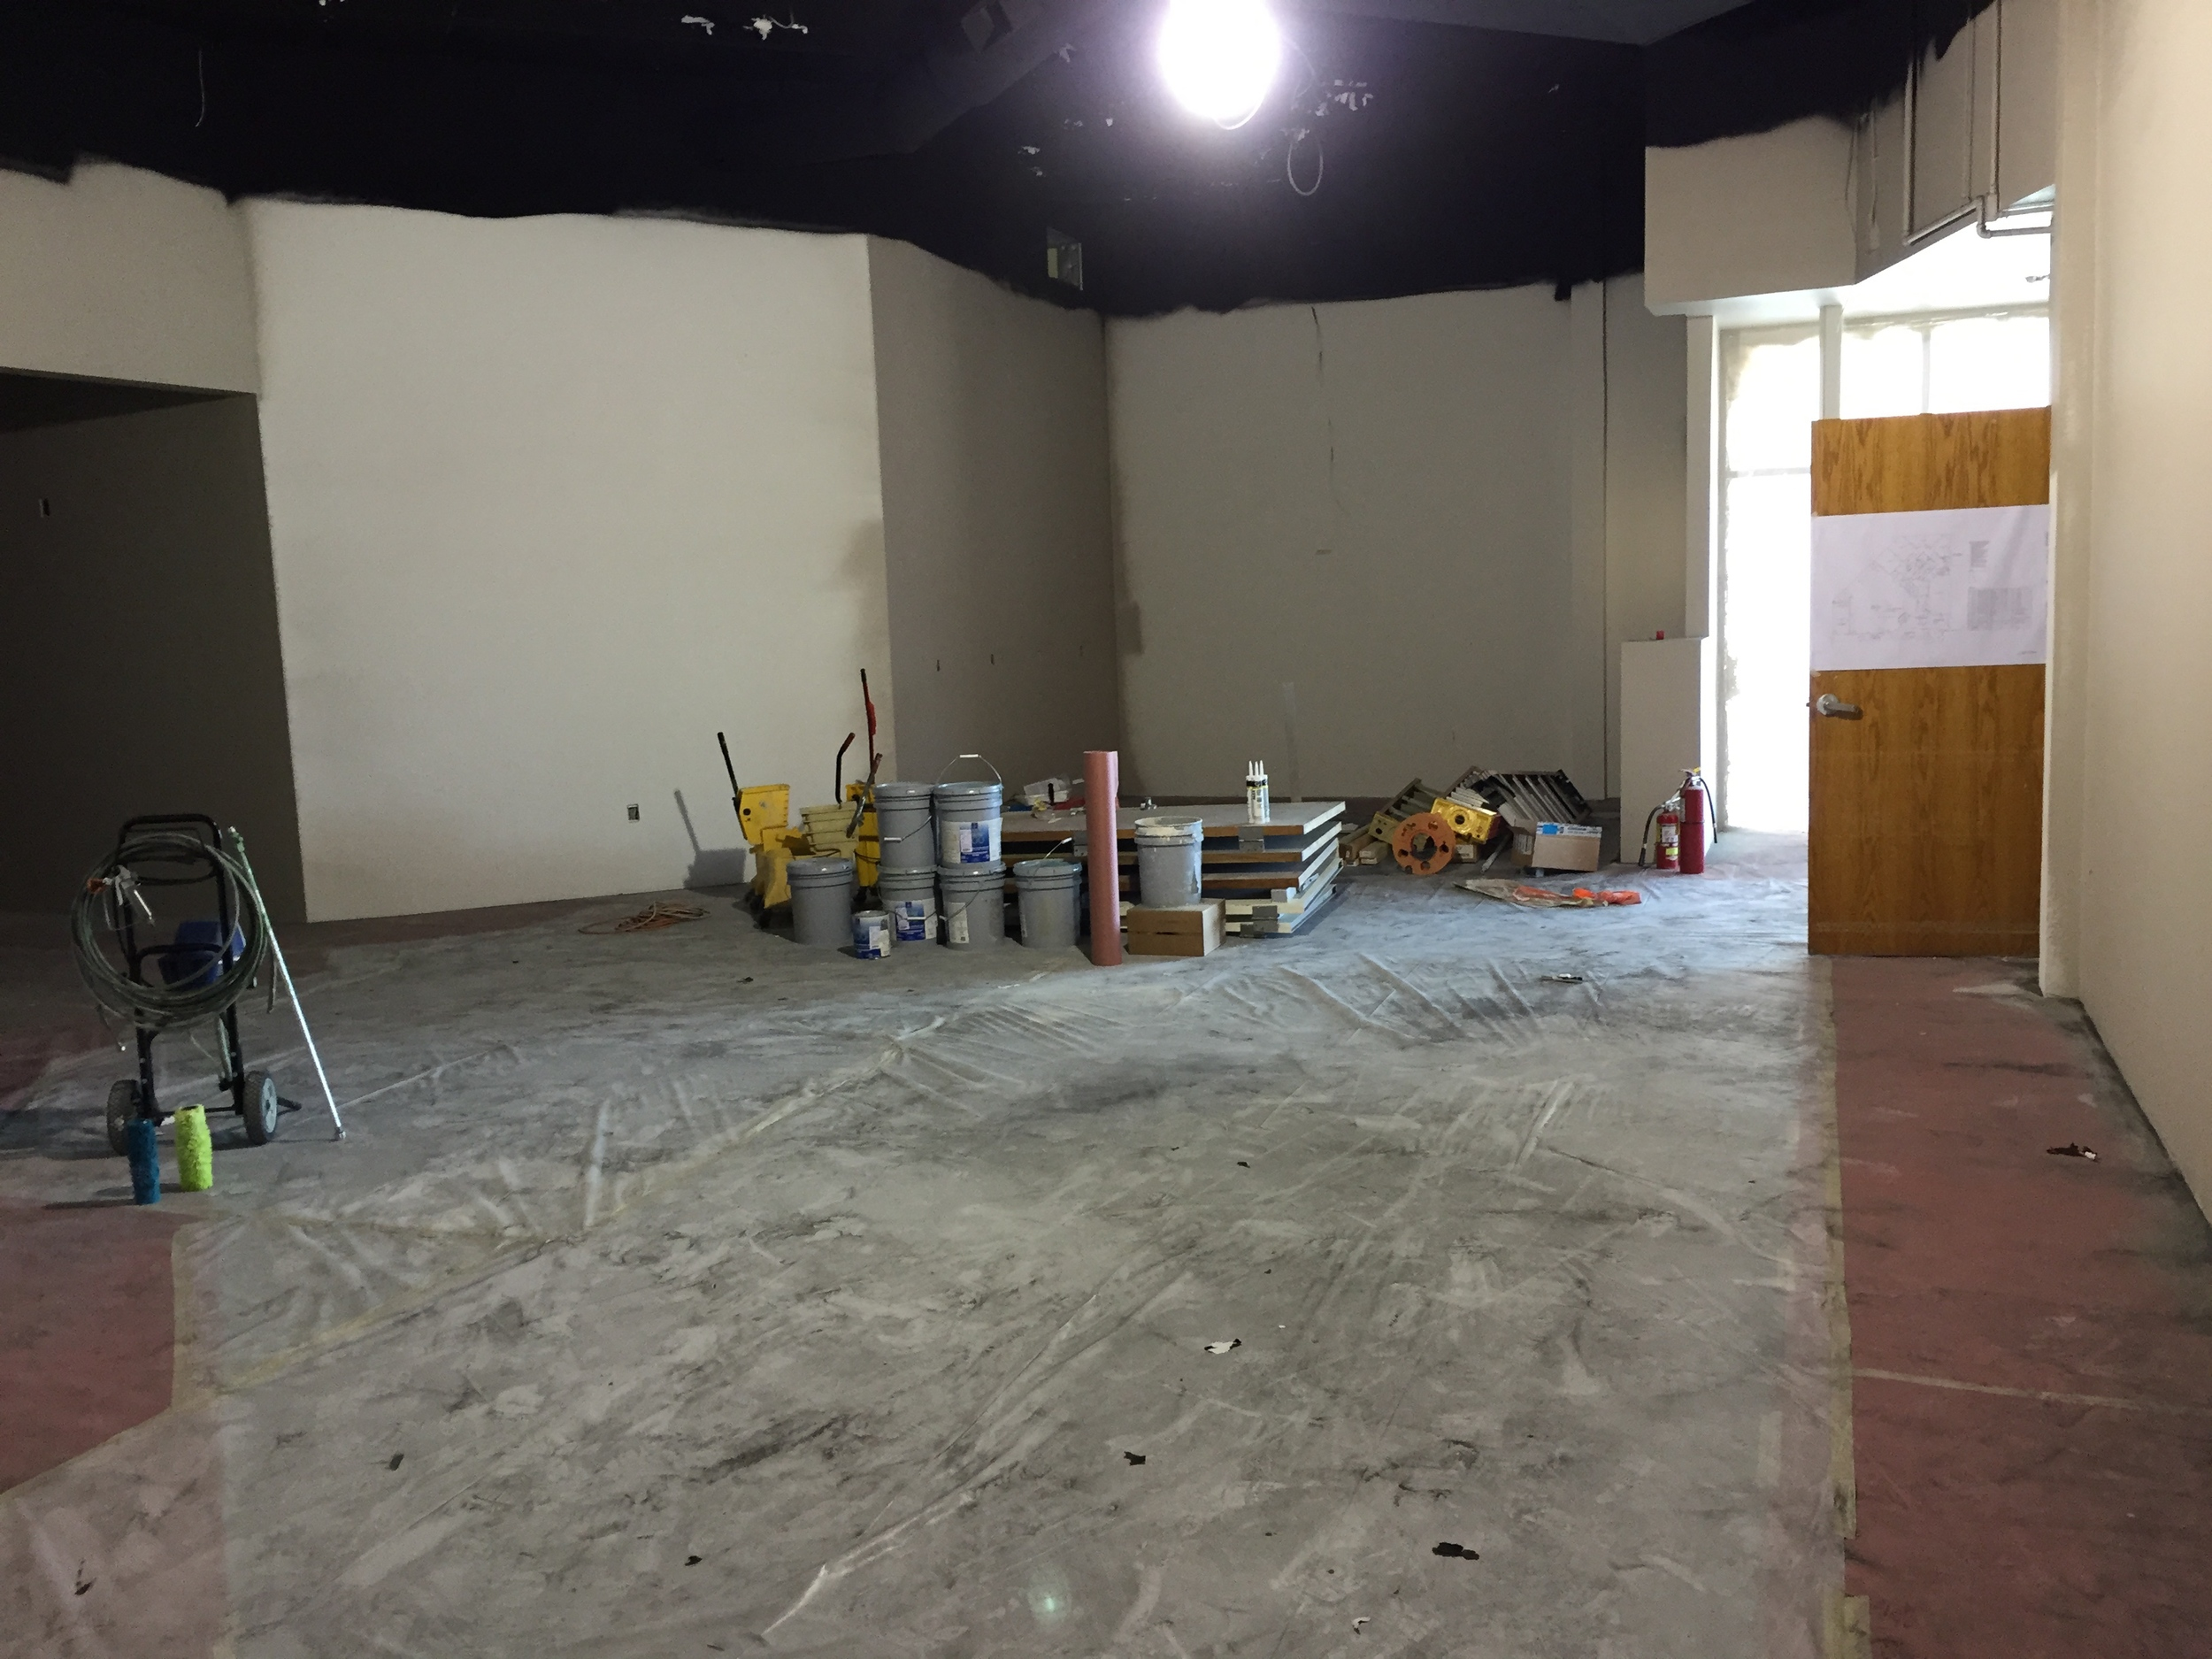 A view of the atrium and cafe being prepped for a pallet wall this Saturday.